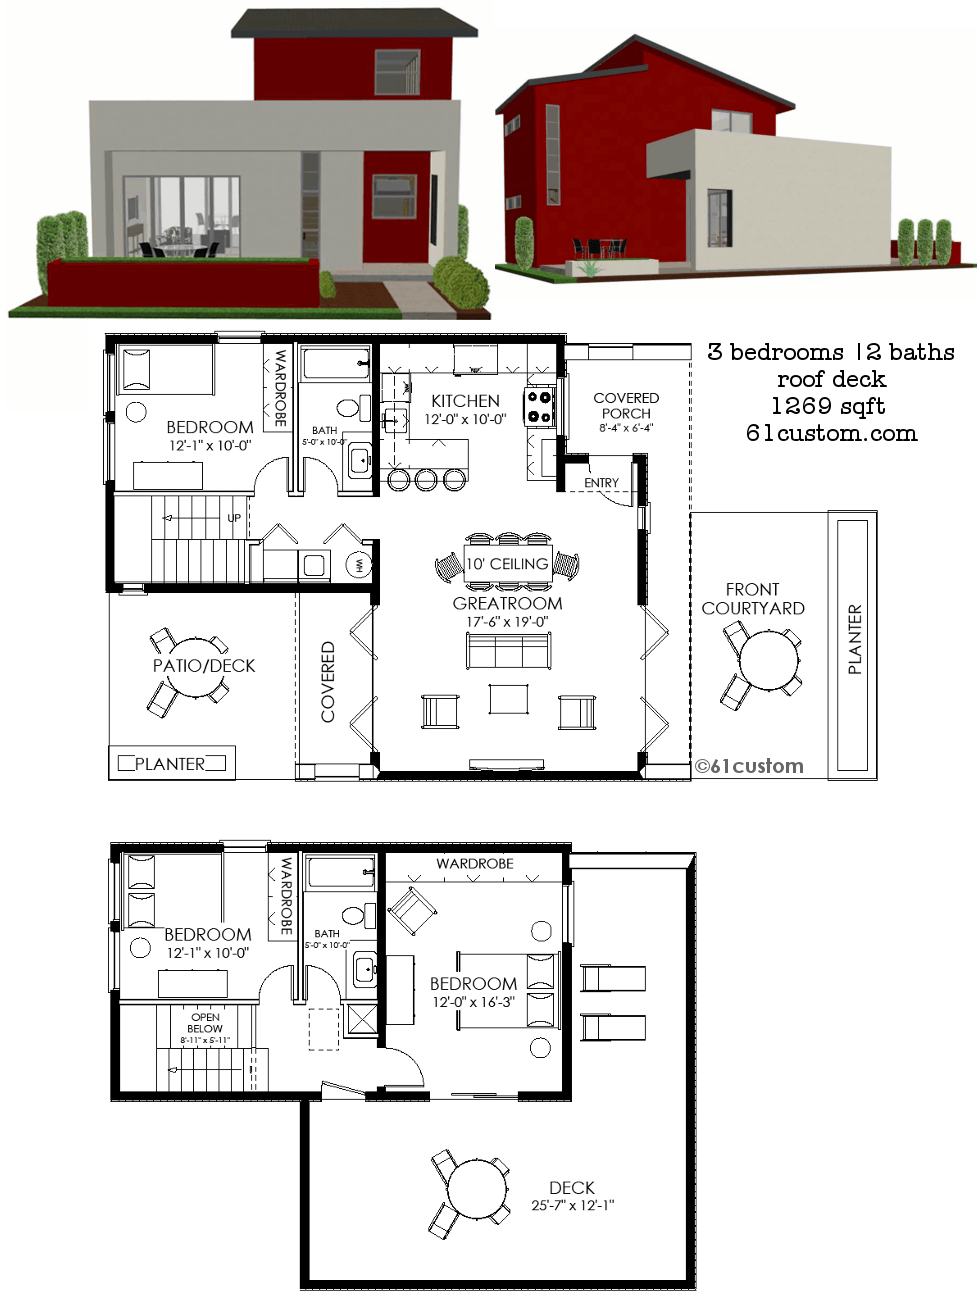 Contemporary small house plan 61custom contemporary modern small modern house plan 1269 61custom ccuart